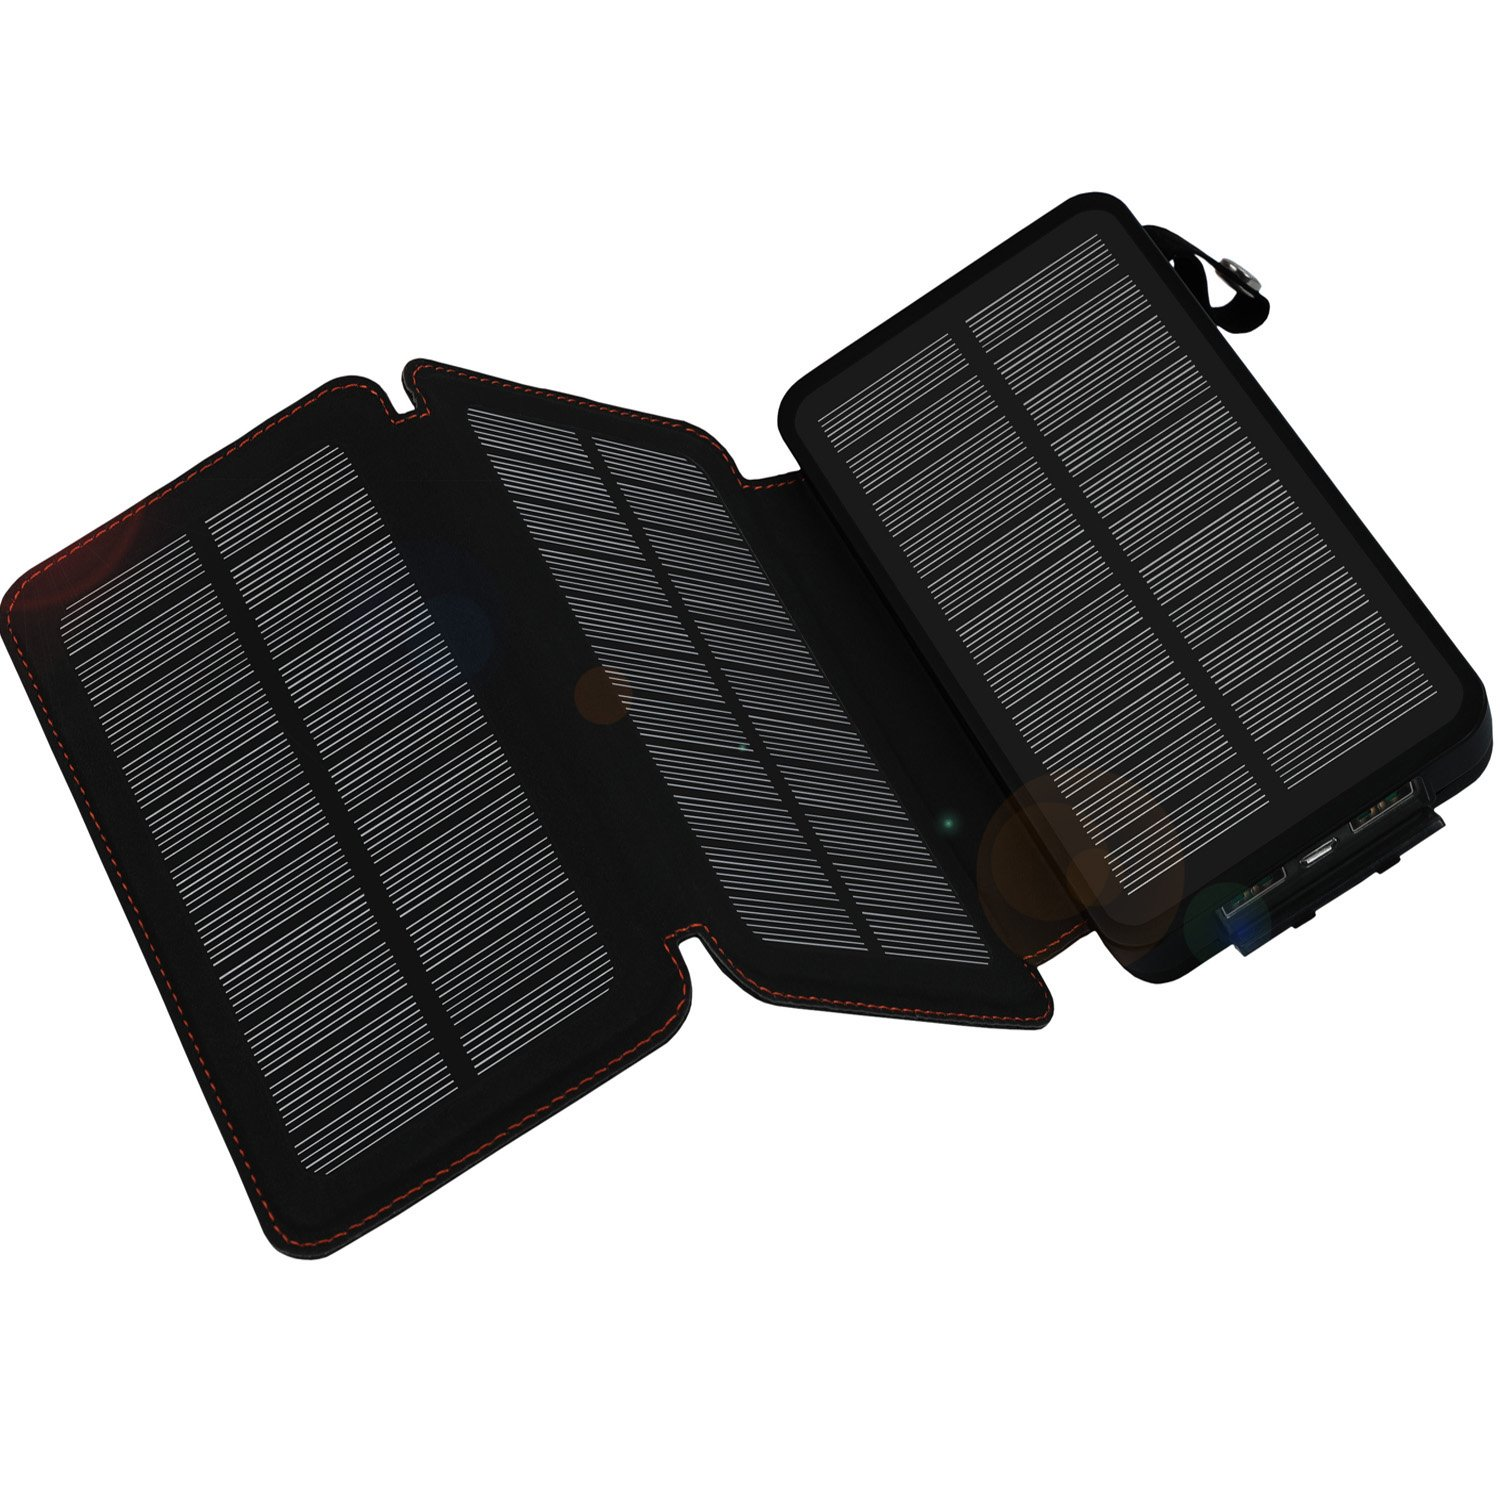 Solar Charger 24000mAh,WBPINE Solar Power Bank Waterproof Dual USB Output with 3 Solar Panels External Battery Bank Flashlights for iPhone 8/X,Samsung S9/Note 8 and More (Black)